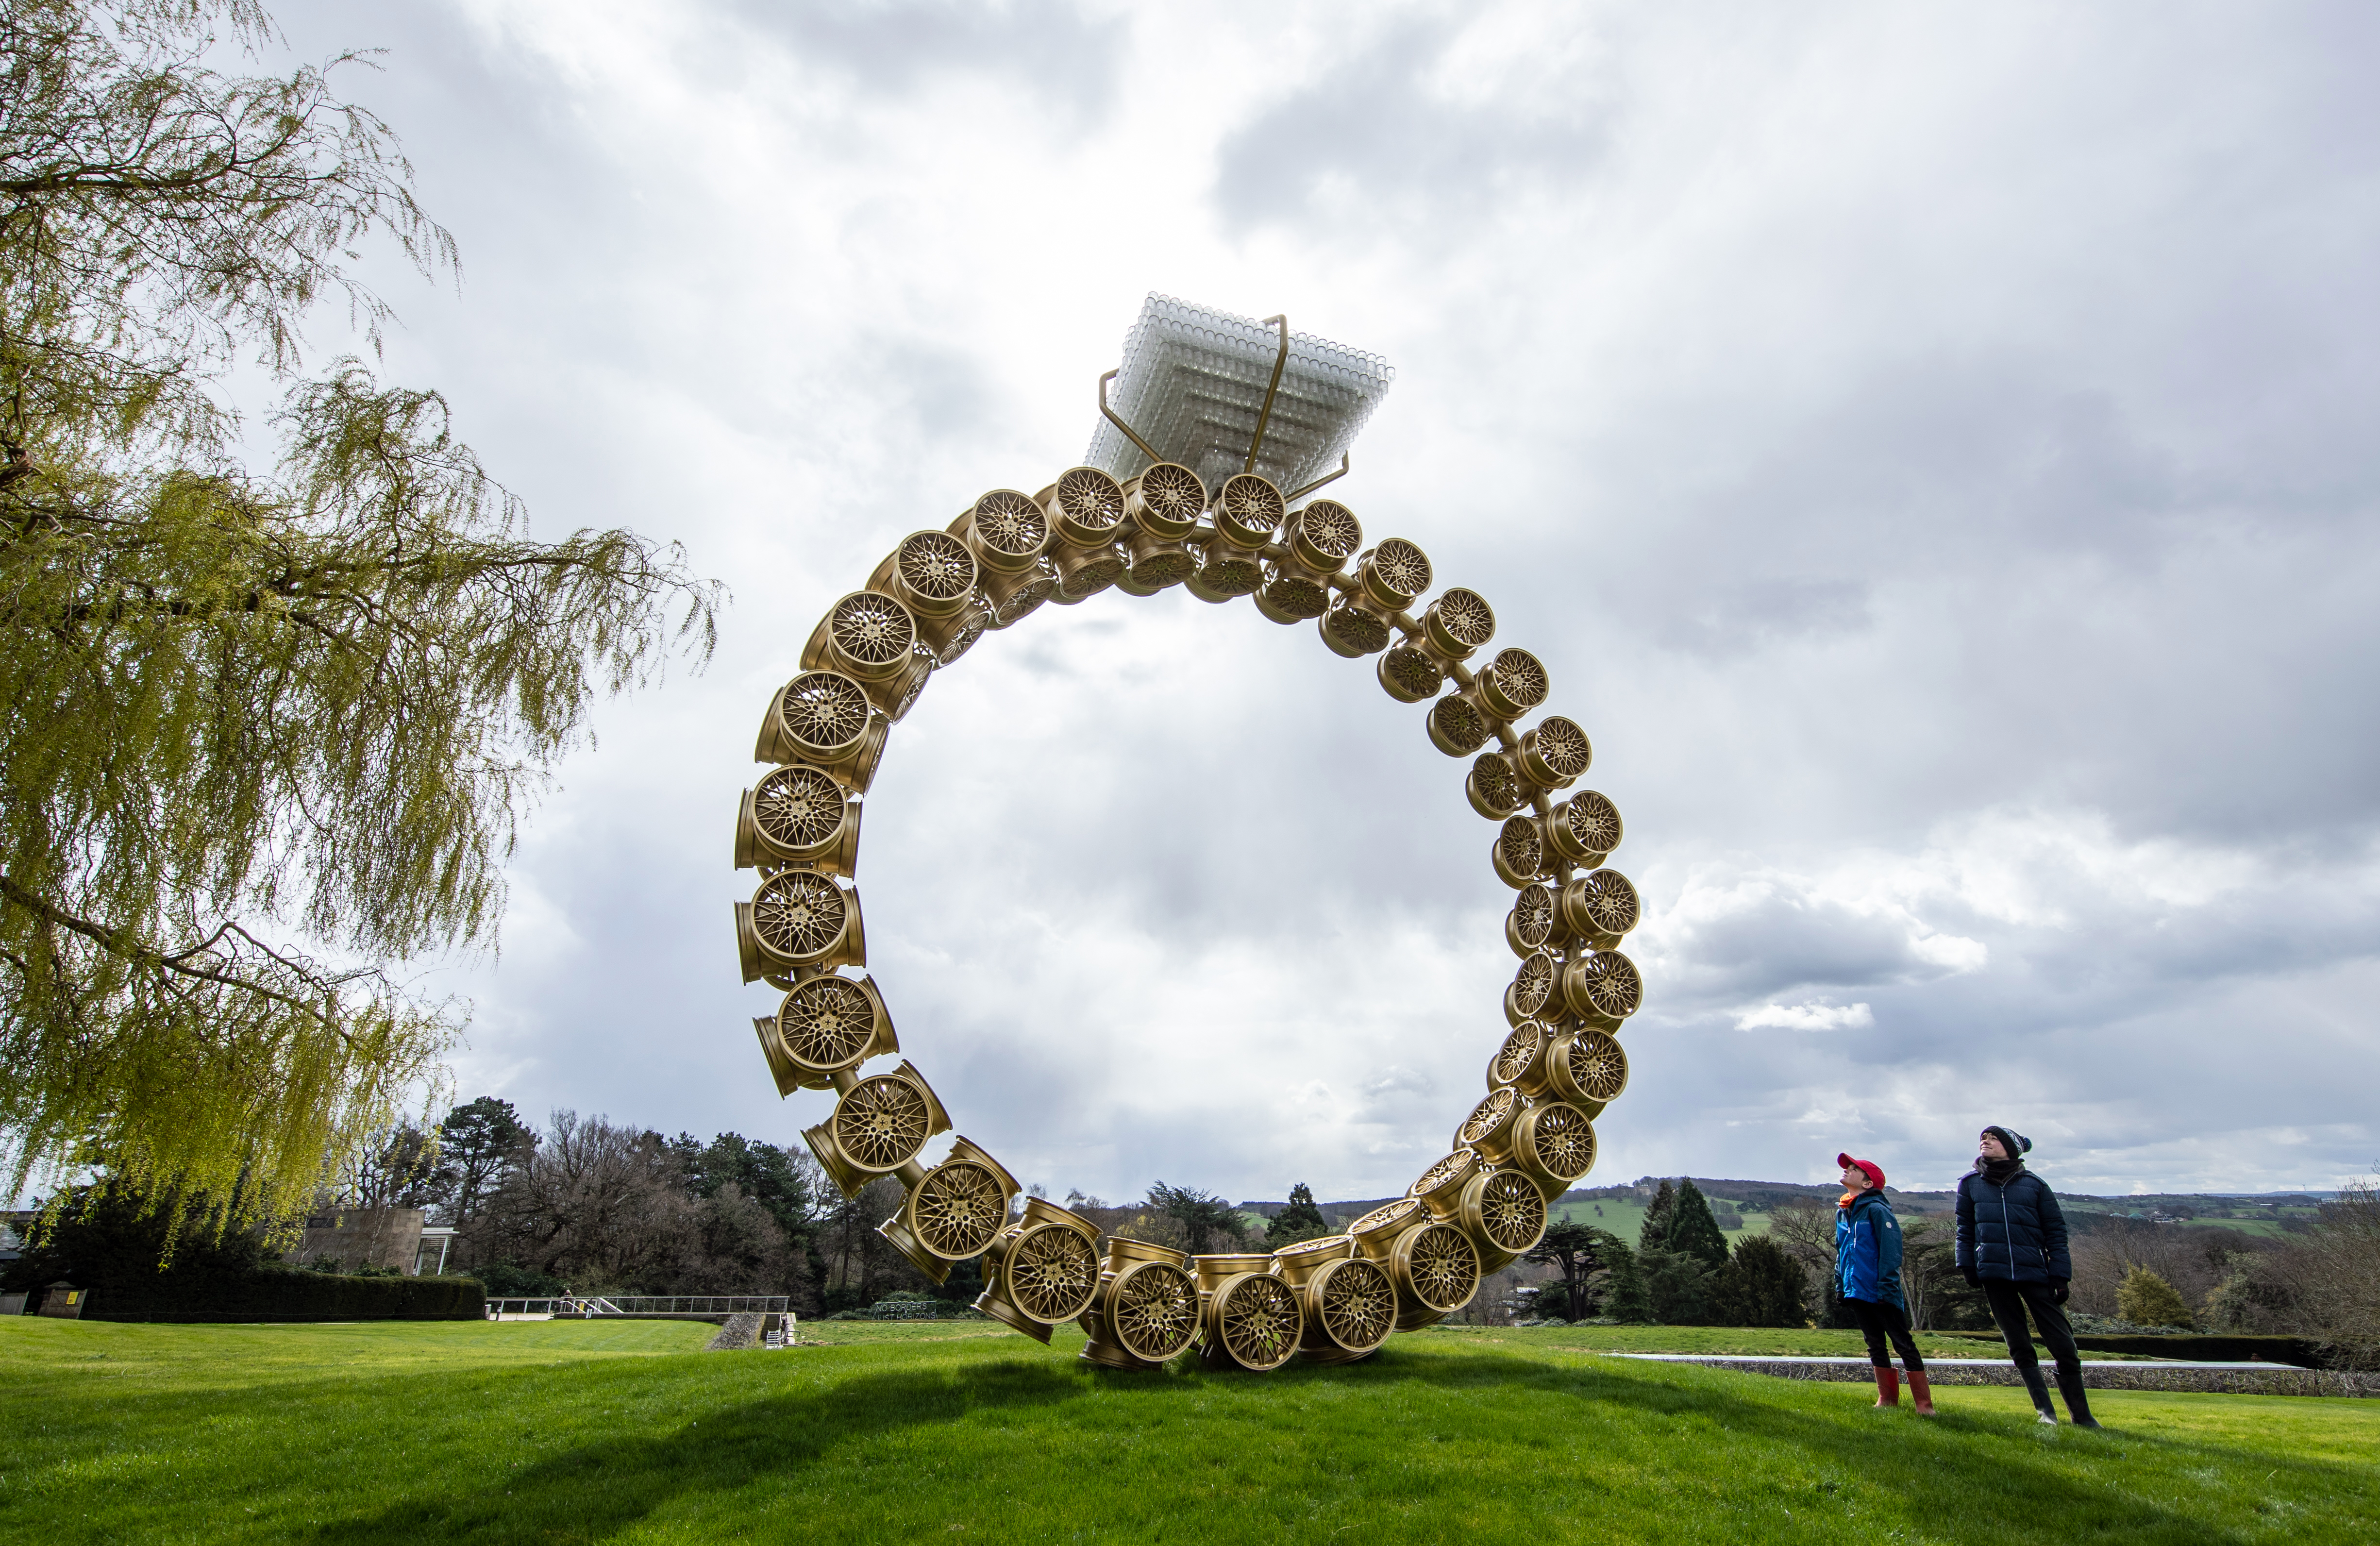 <p>Visitors Max Blyth (left) and Finton Blyth view a work titled 'Solitaire' by artist Joana Vasconcelos at the Yorkshire Sculpture Park (YSP). The grounds of the park are open and the YSP is looking forward to welcoming visitors back to other areas as soon as government restrictions allow. Picture date: Tuesday April 6, 2021. (Photo by Danny Lawson/PA Images via Getty Images)</p>